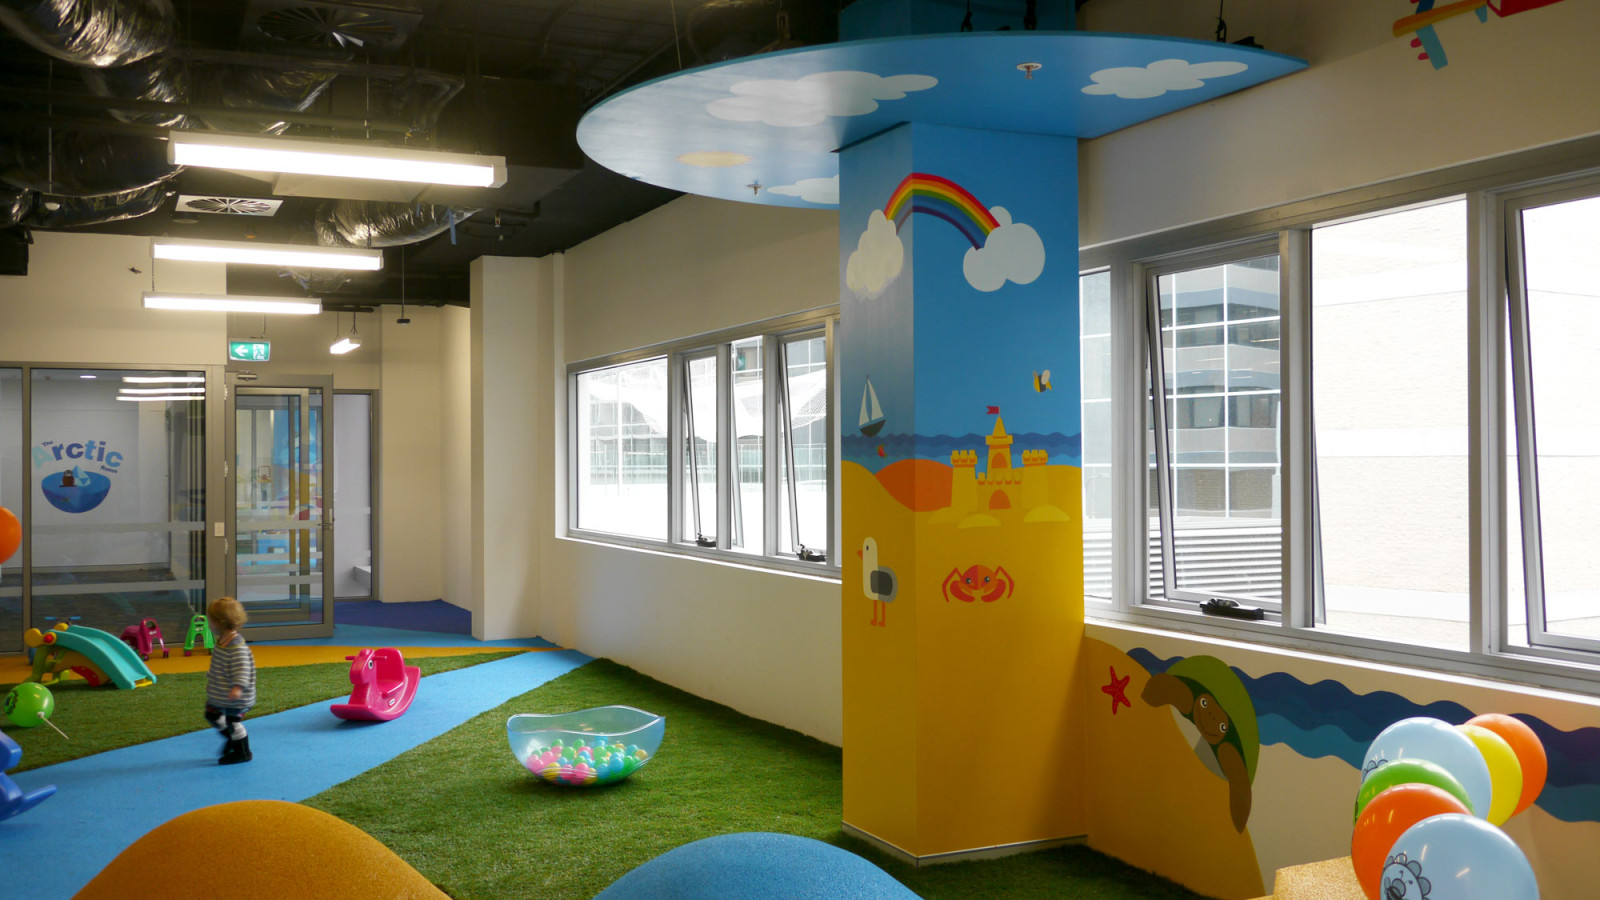 the-art-of-wall-child-care-center-mural-beach-room-1600x900